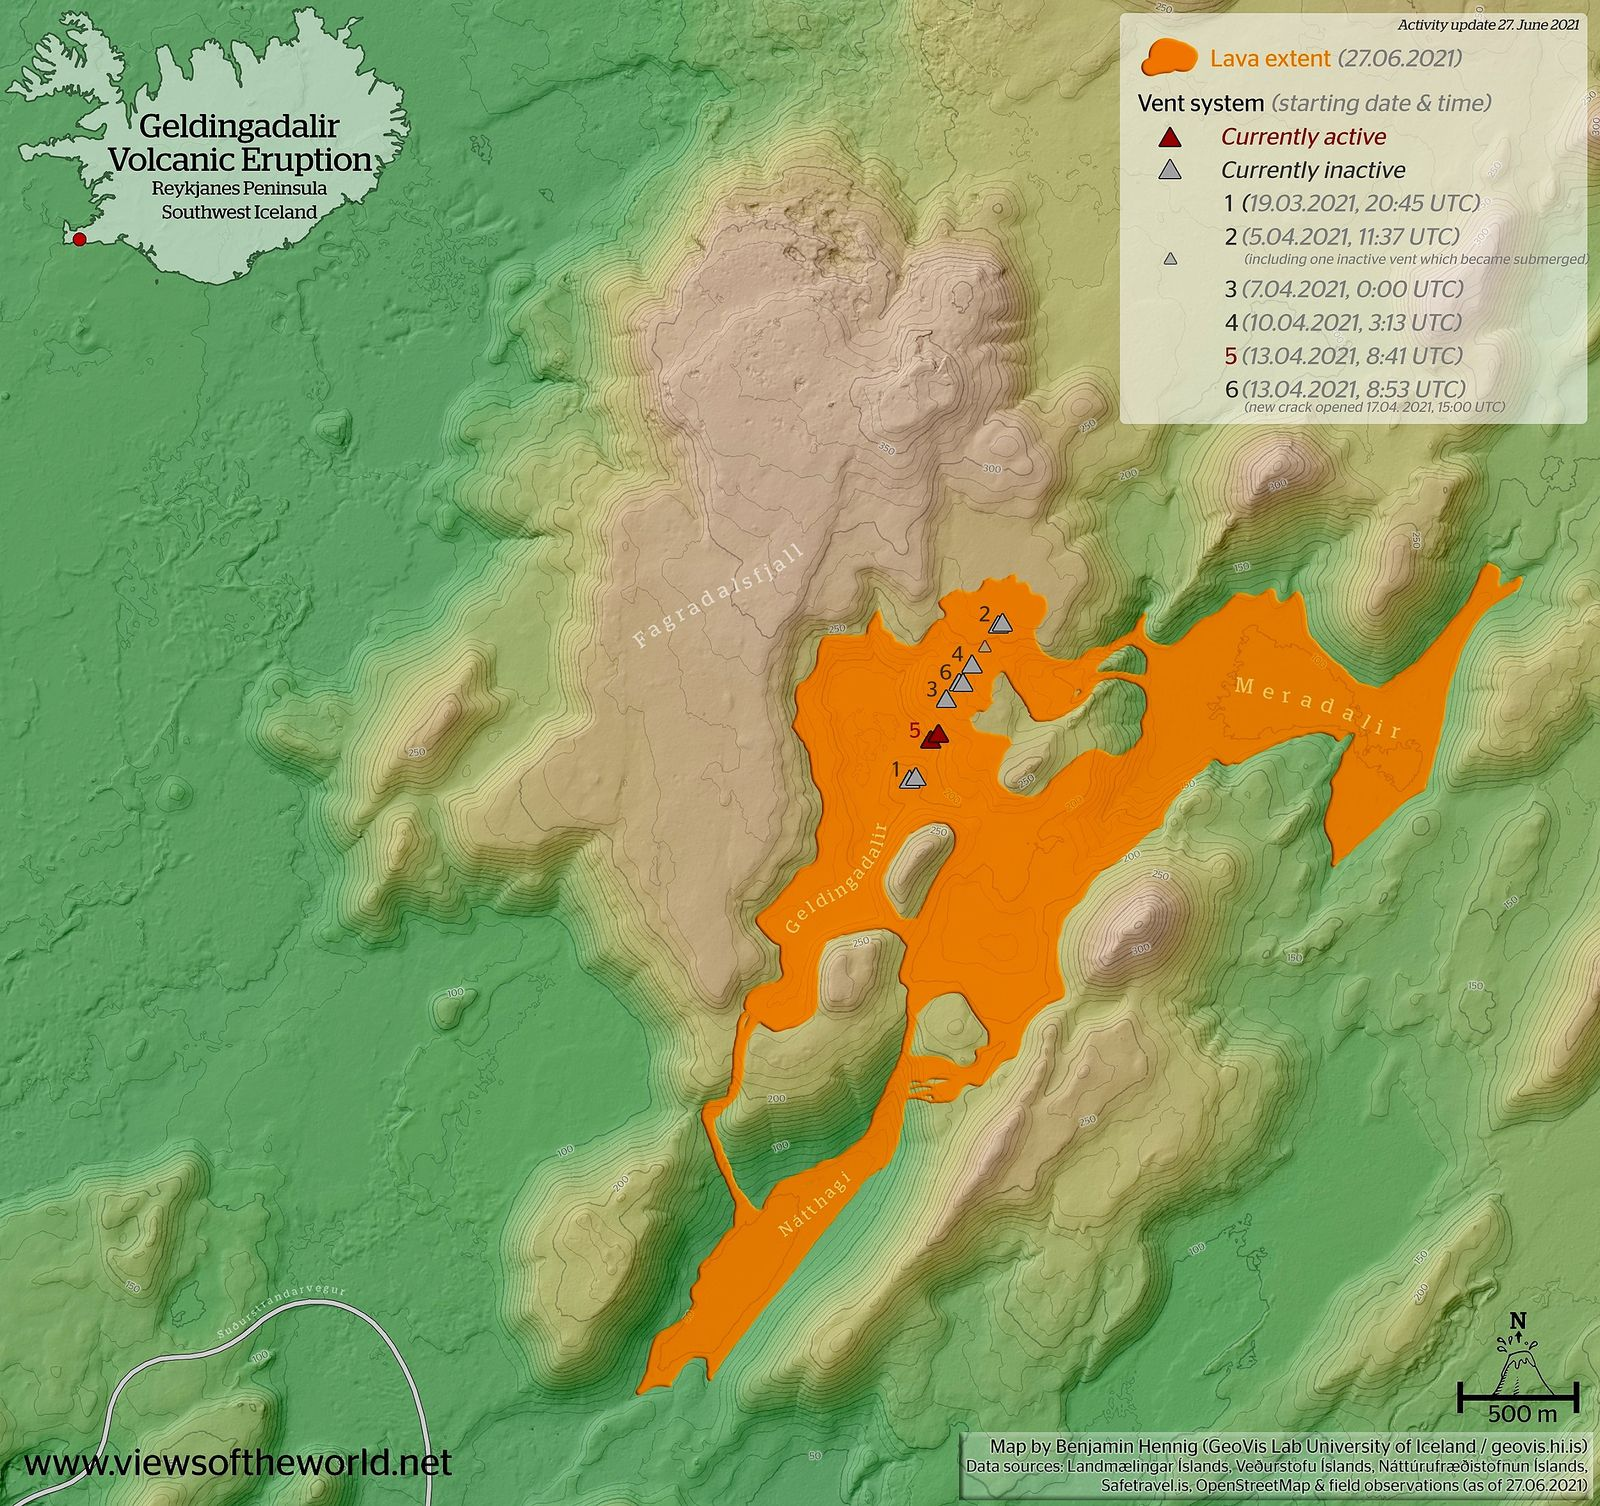 Fagradalsfjall - extent of the lava field on 27.06.2021 - Benjamin Hennig - one click to enlarge